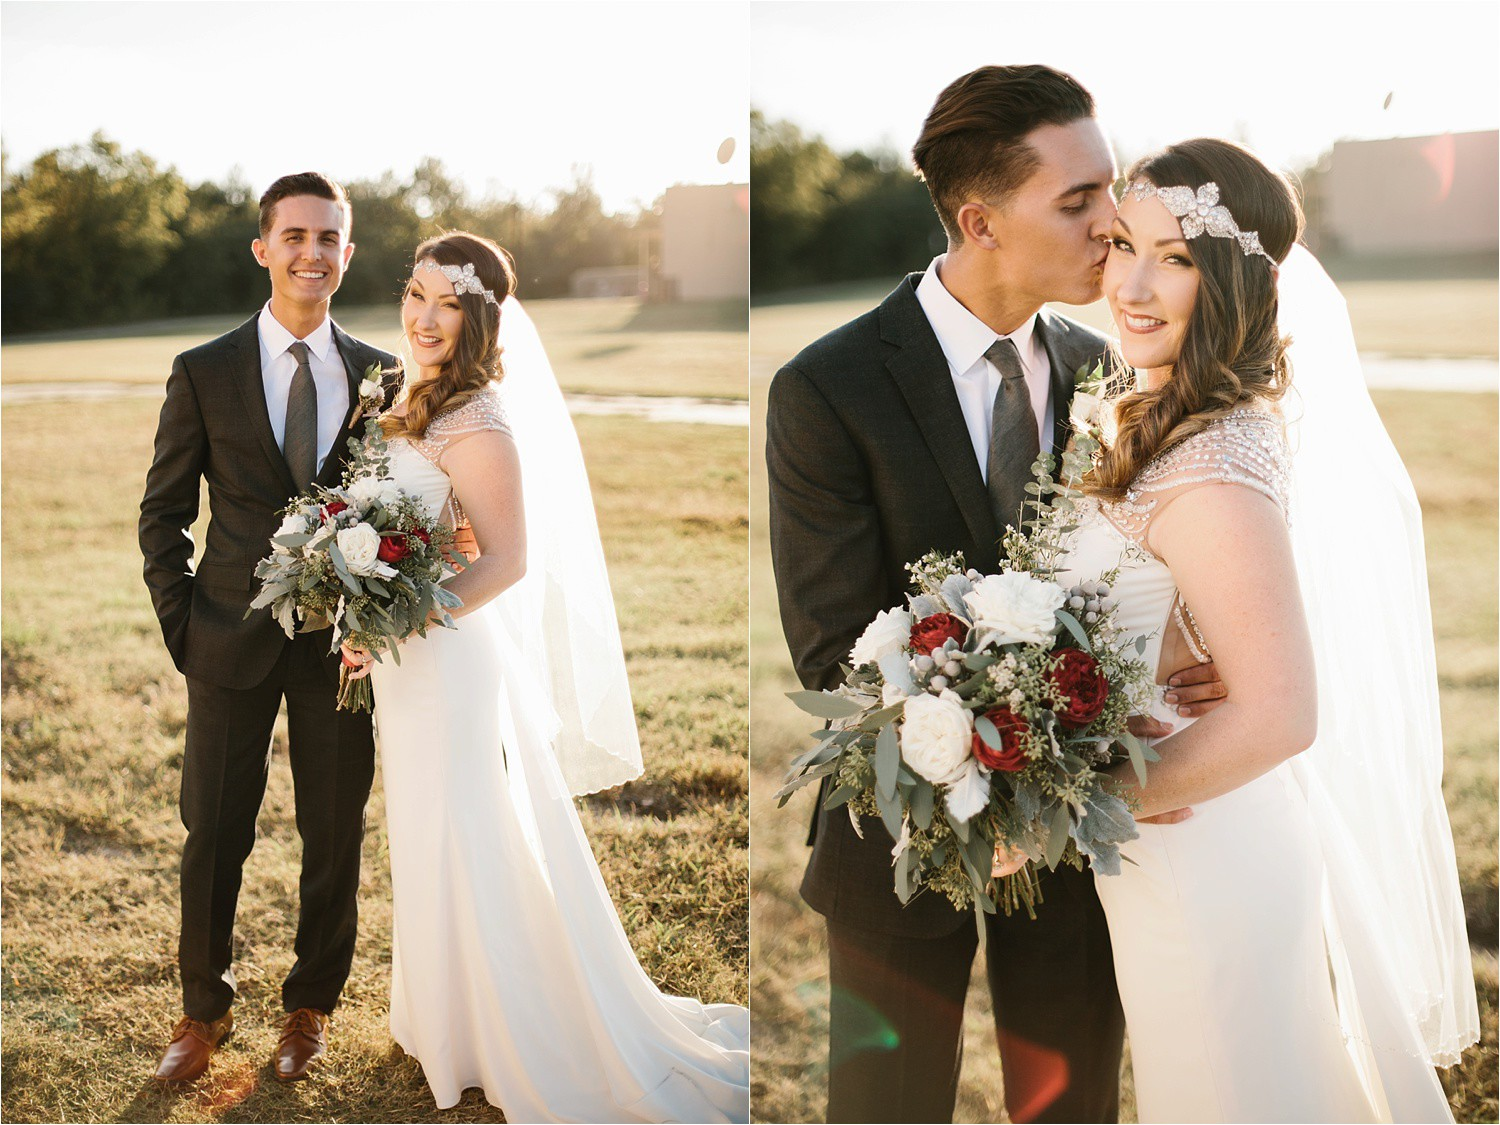 whittney-drew-__-an-intimate-wine-and-navy-wedding-in-an-industrial-venue-at-loft-123-in-paris-tx-by-north-texas-wedding-photographer-rachel-meagan-photography-_-067